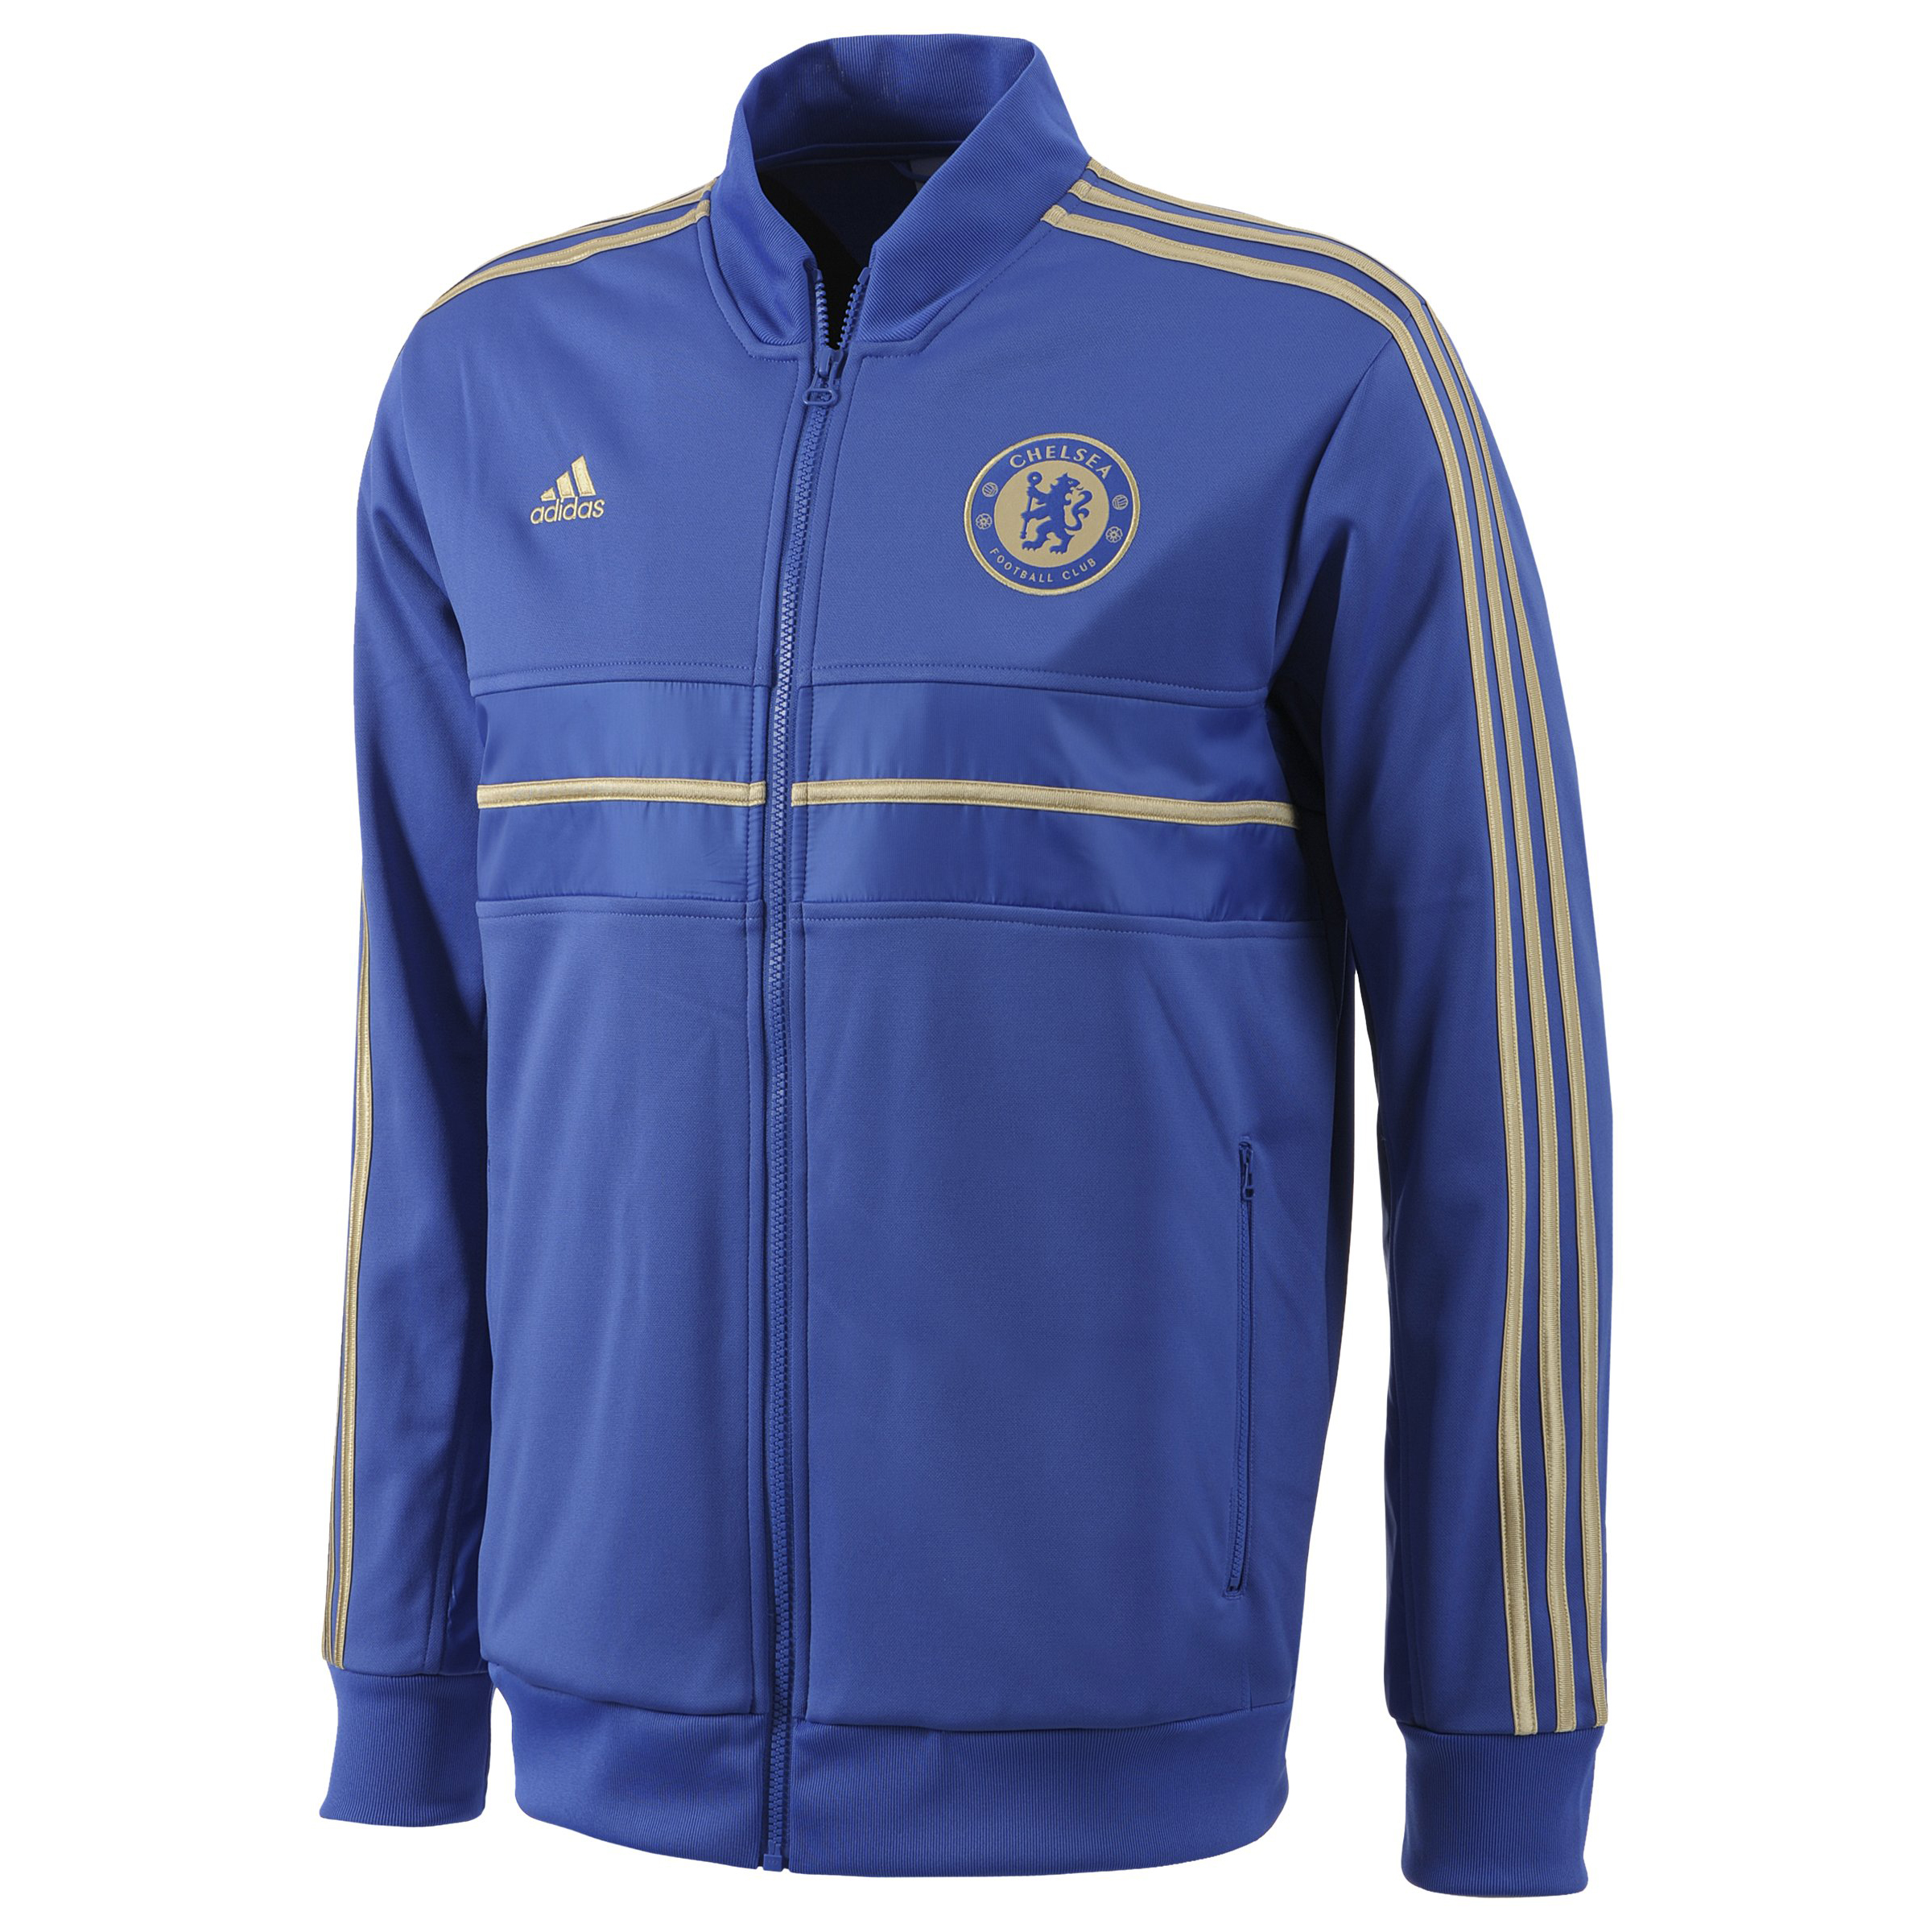 Chelsea Anthem Jacket - Reflex Blue/Light Football Gold - Youths